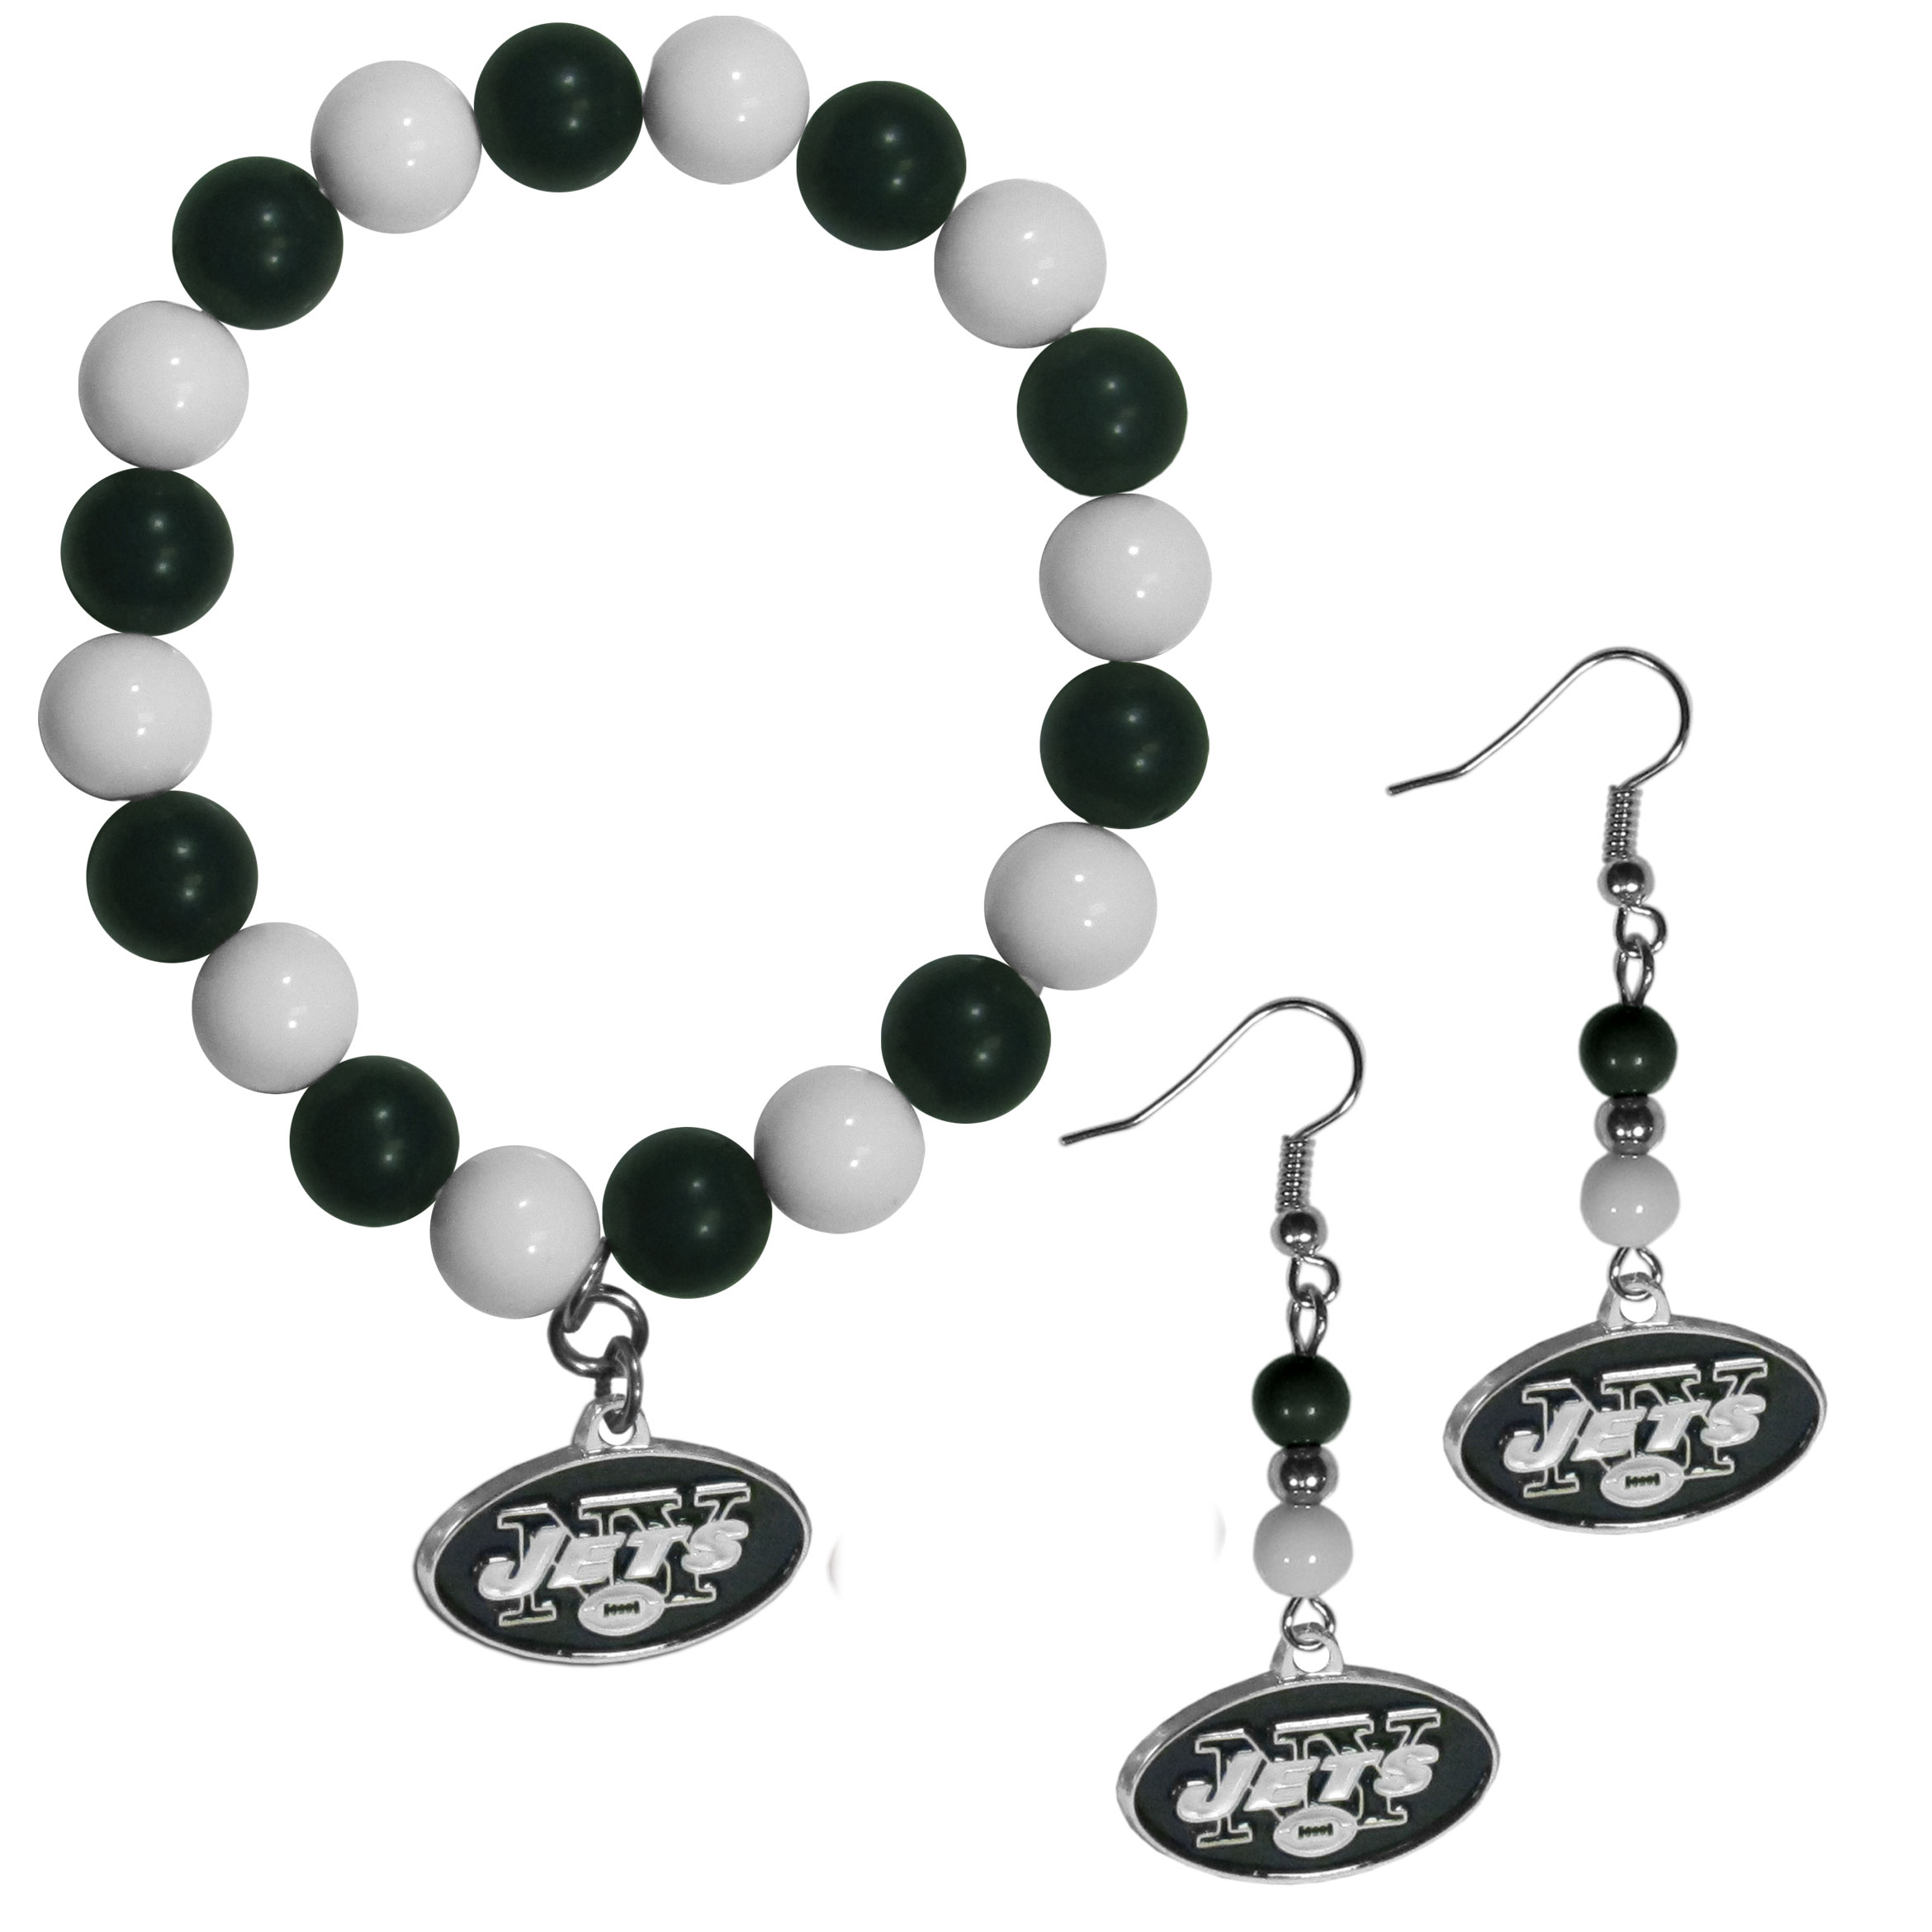 New York Jets Fan Bead Earrings and Bracelet Set - This fun and colorful New York Jets fan bead jewelry set is fun and casual with eye-catching beads in bright team colors. The fashionable dangle earrings feature a team colored beads that drop down to a carved and enameled charm. The stretch bracelet has larger matching beads that make a striking statement and have a matching team charm. These sassy yet sporty jewelry pieces make a perfect gift for any female fan. Spice up your game-day outfit with these fun colorful earrings and bracelet that are also cute enough for any day.